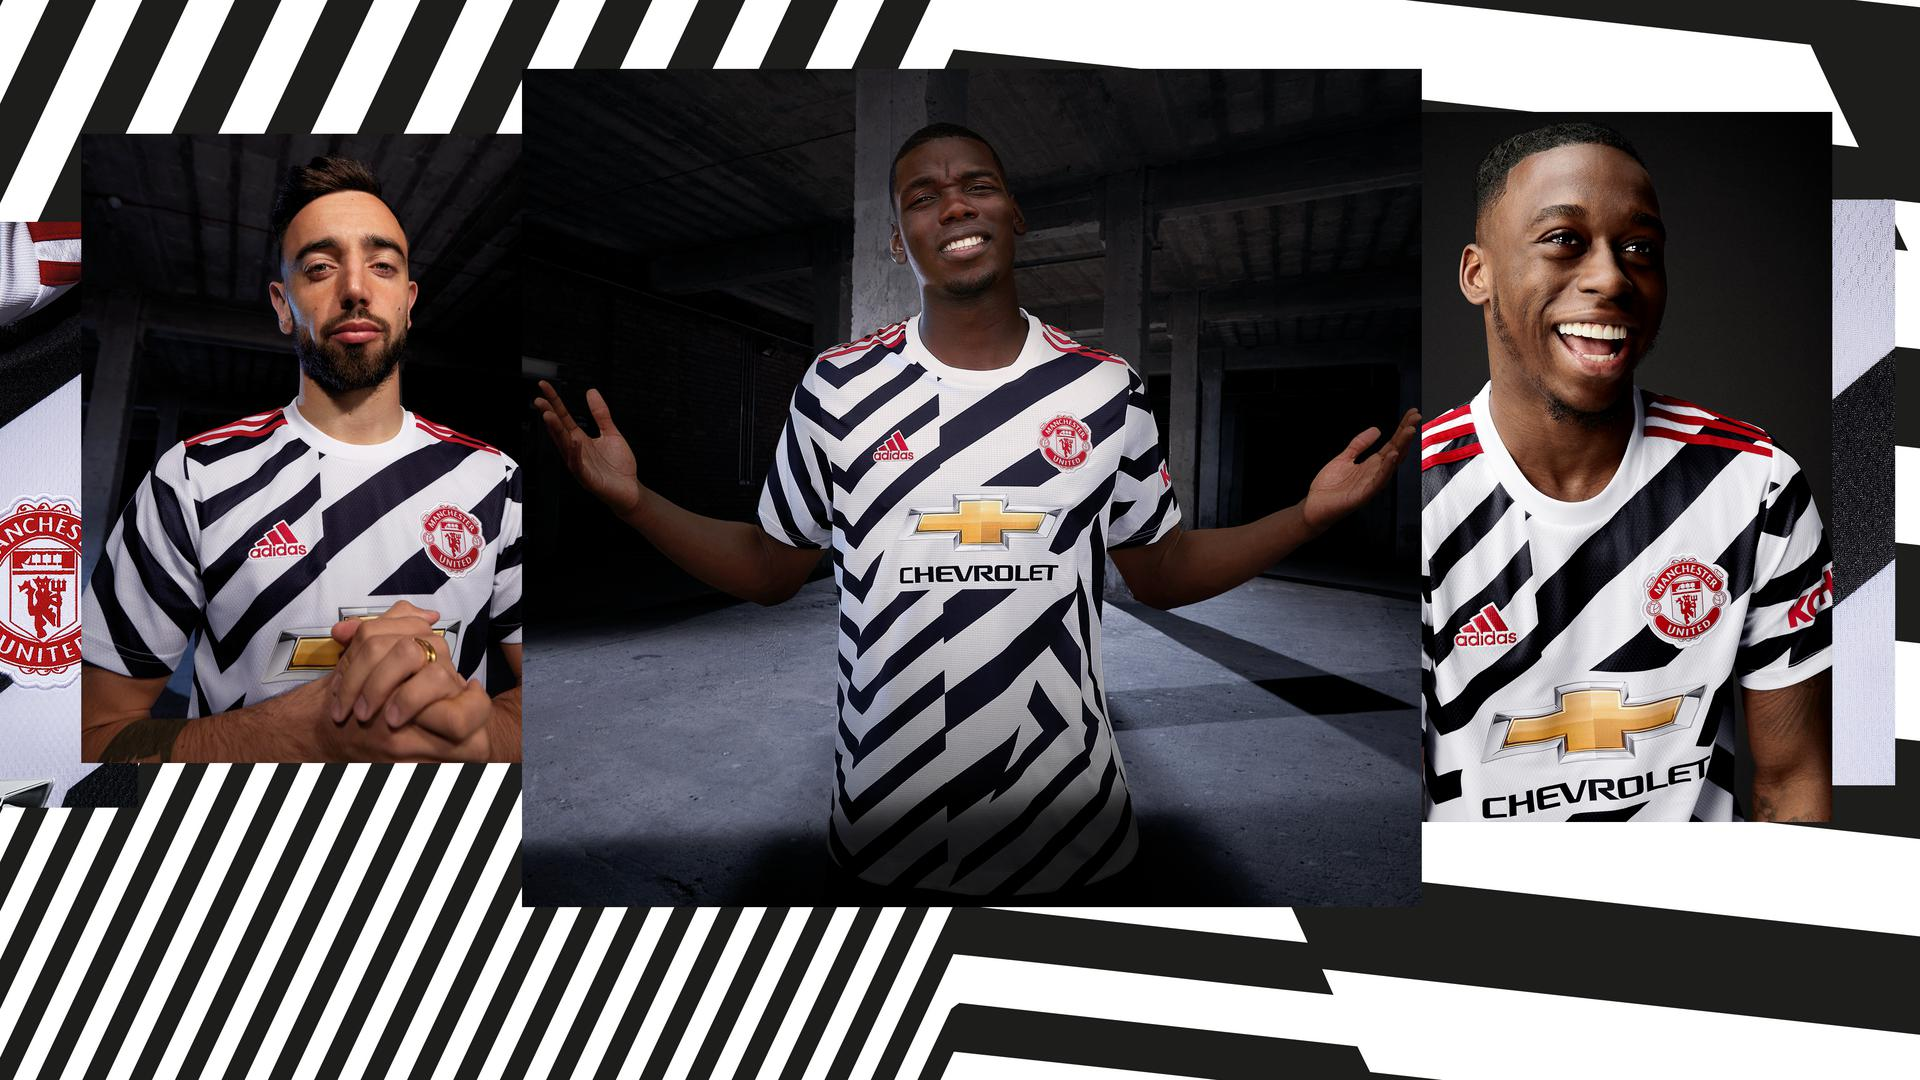 The Best Manchester United Jersey 2021 3Rd Kit